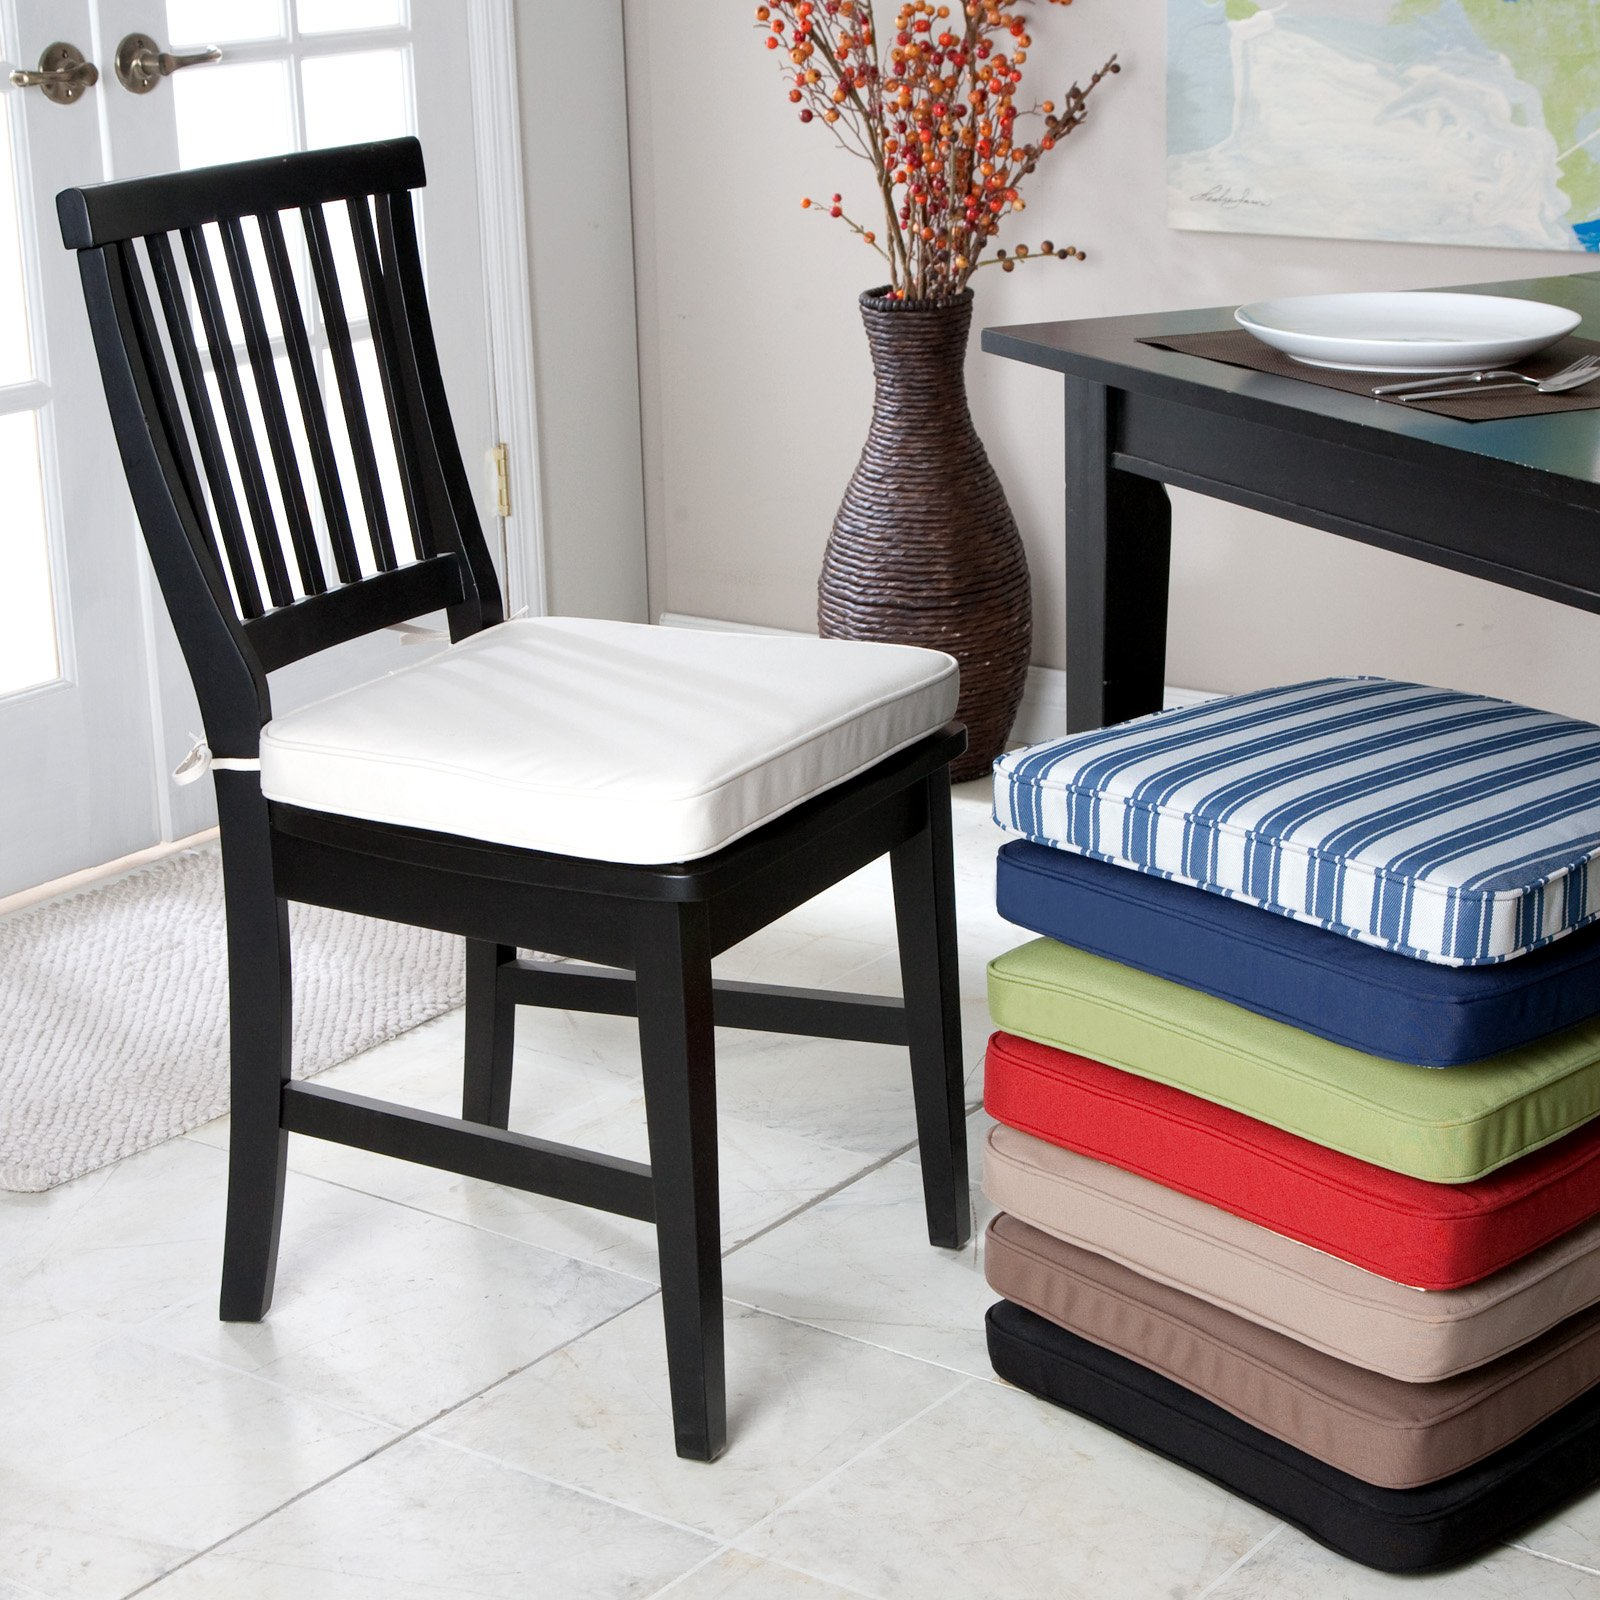 Seat cushions for dining room chairs - large and beautiful ...